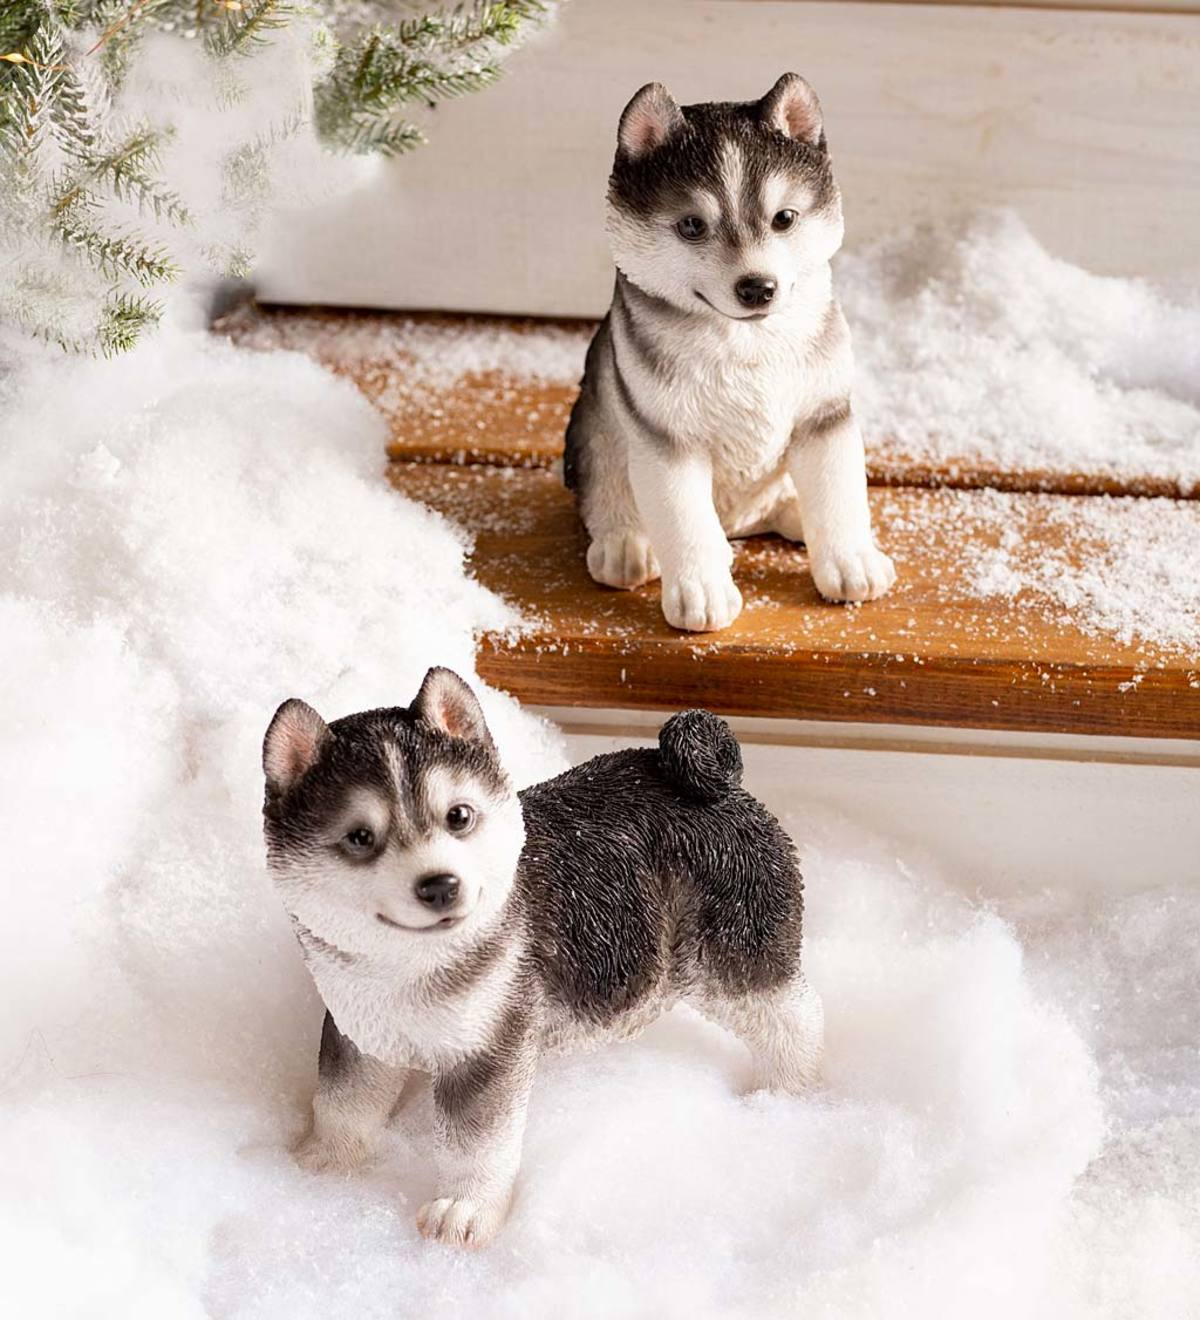 Lifelike Indoor/Outdoor Siberian Husky Puppy Statues, Set of 2